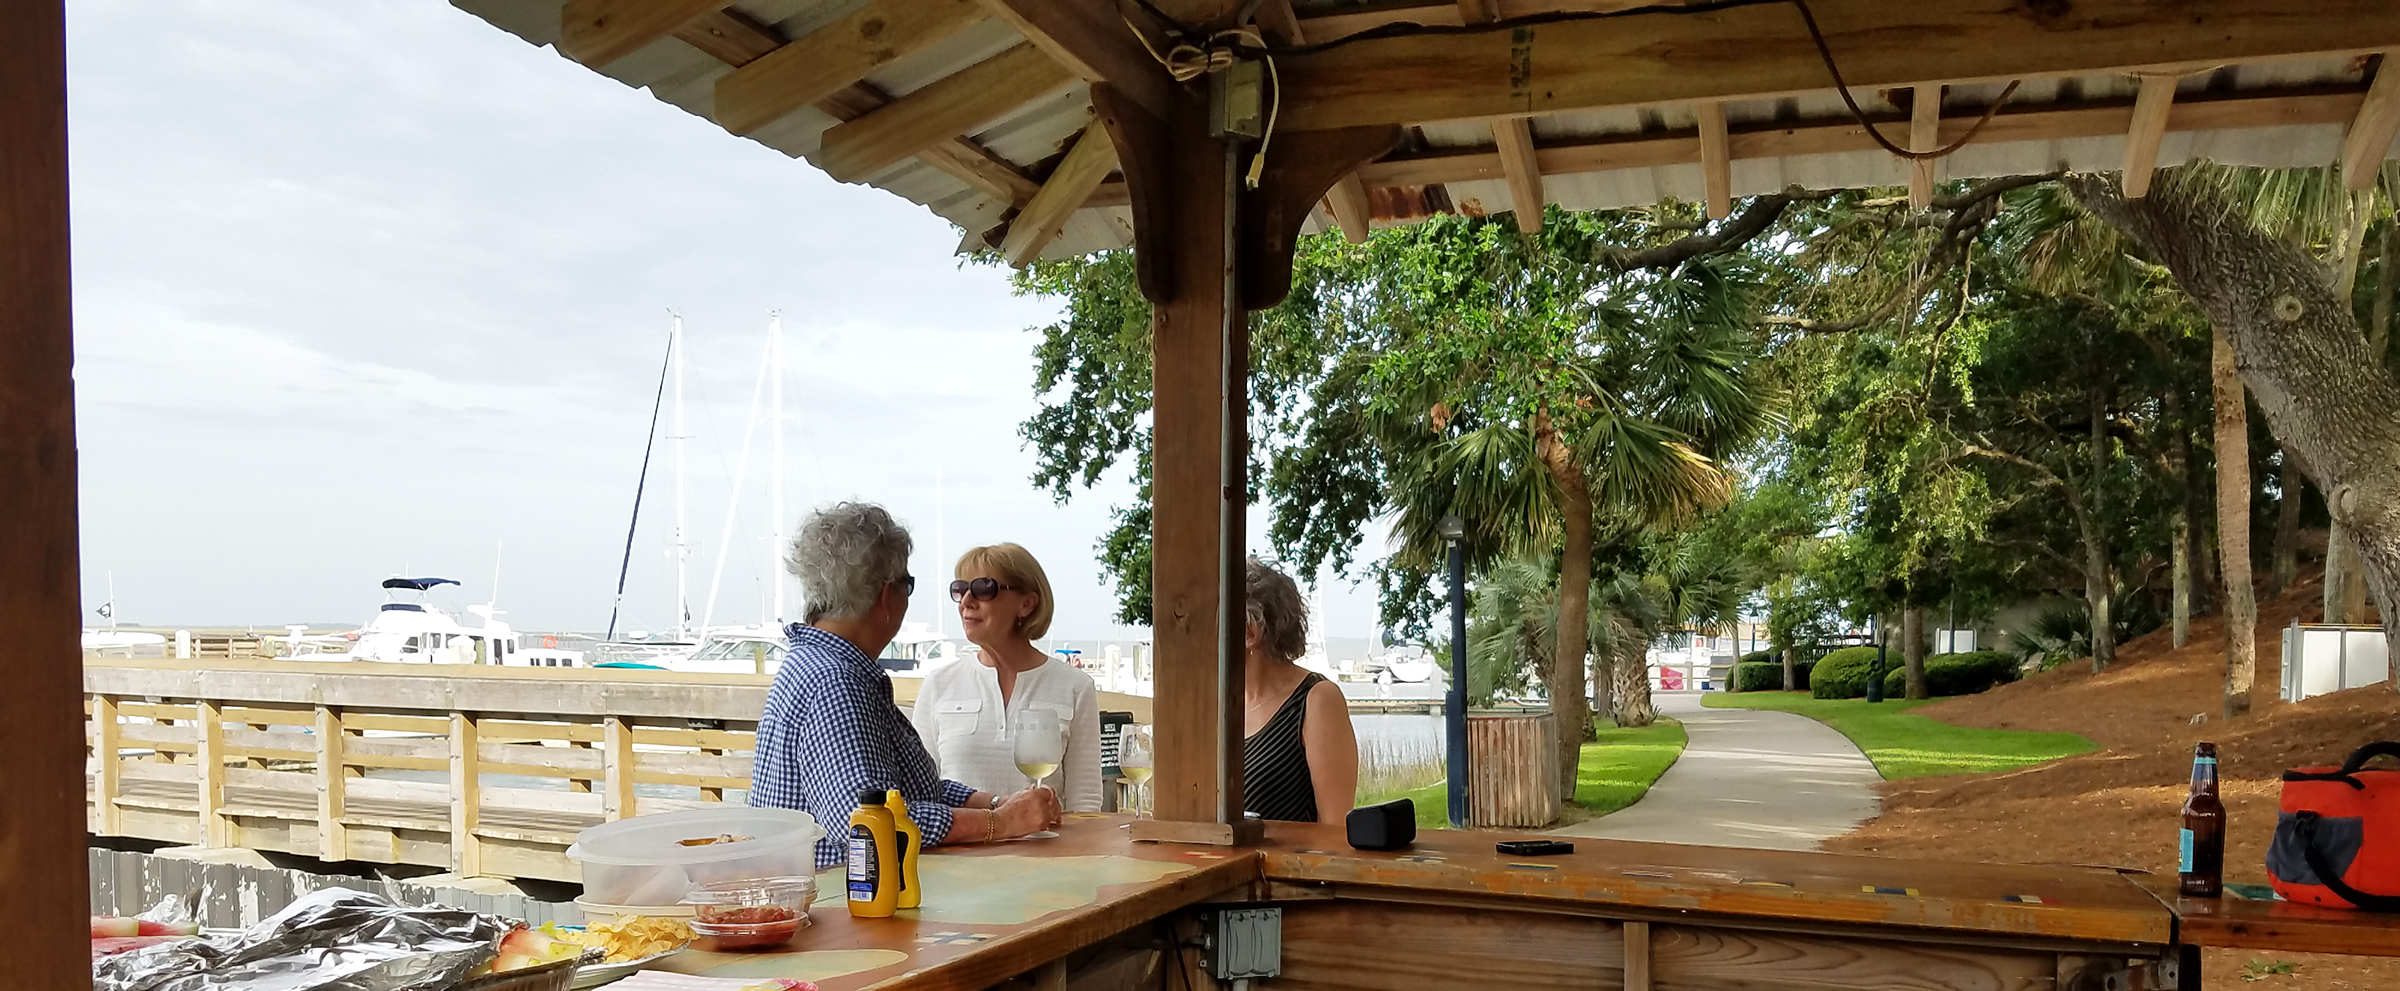 Boaters' Nite, Tiki Bar, June 22